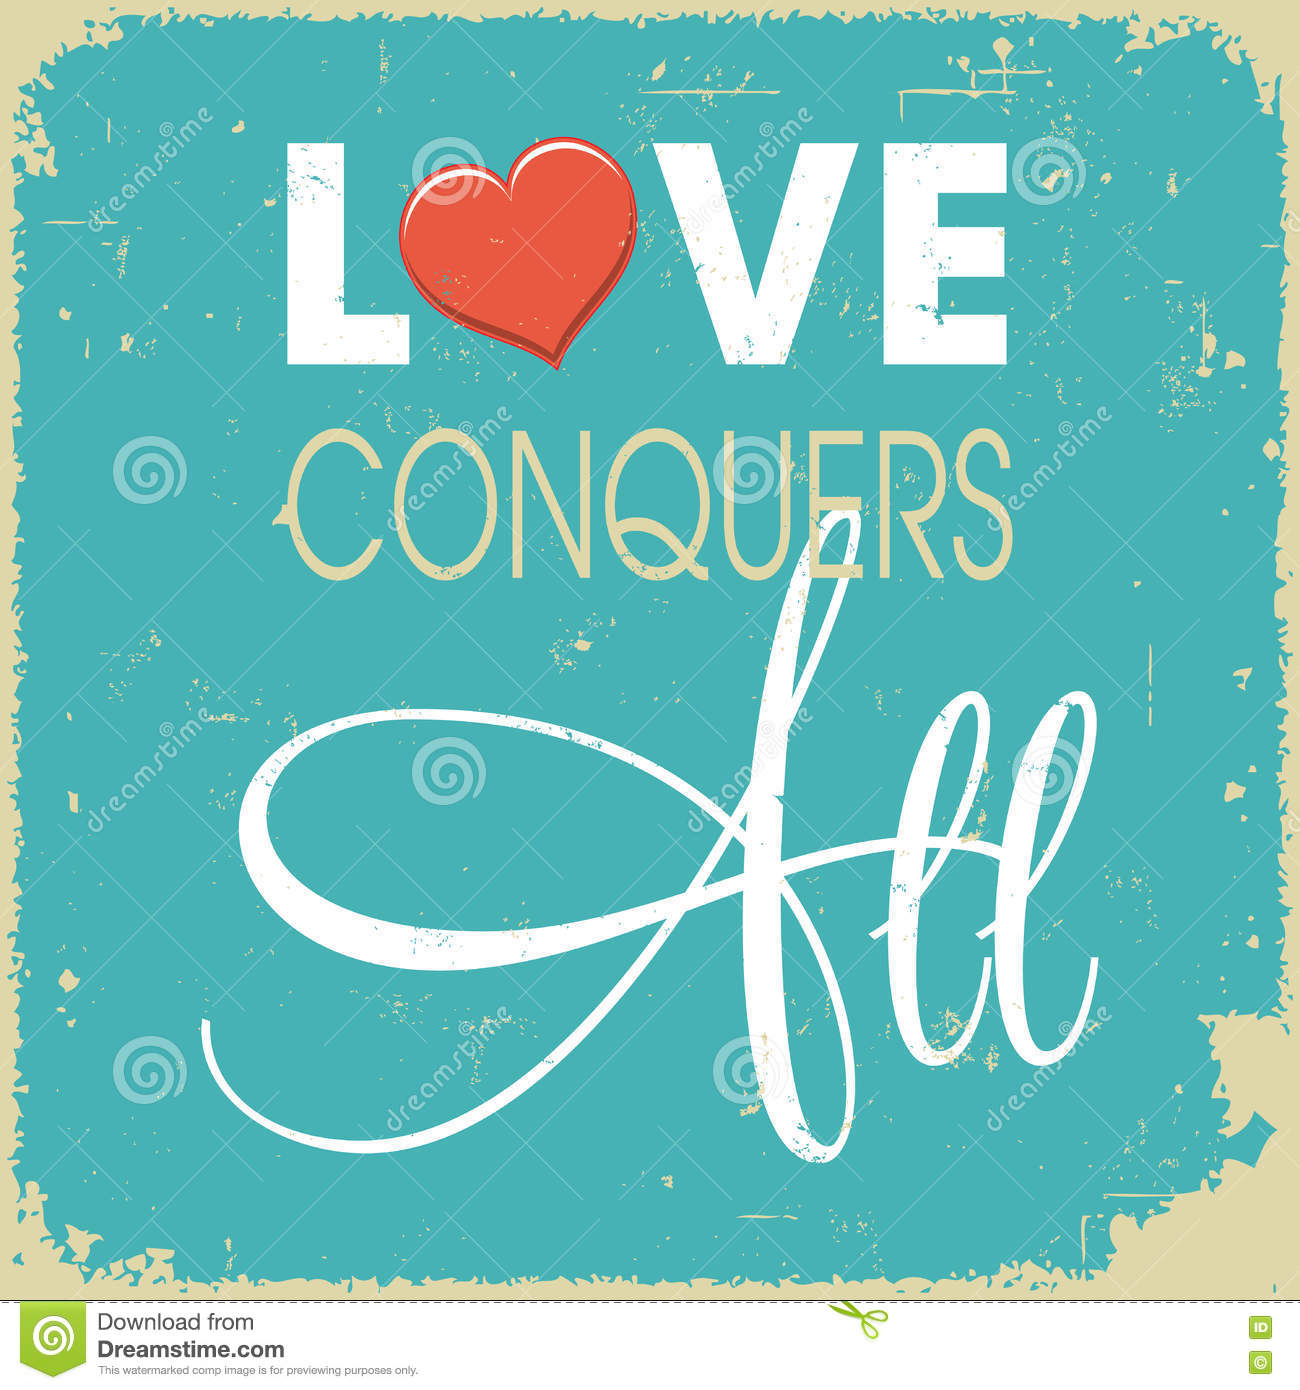 Love Conquers All Stock Vector. Illustration Of